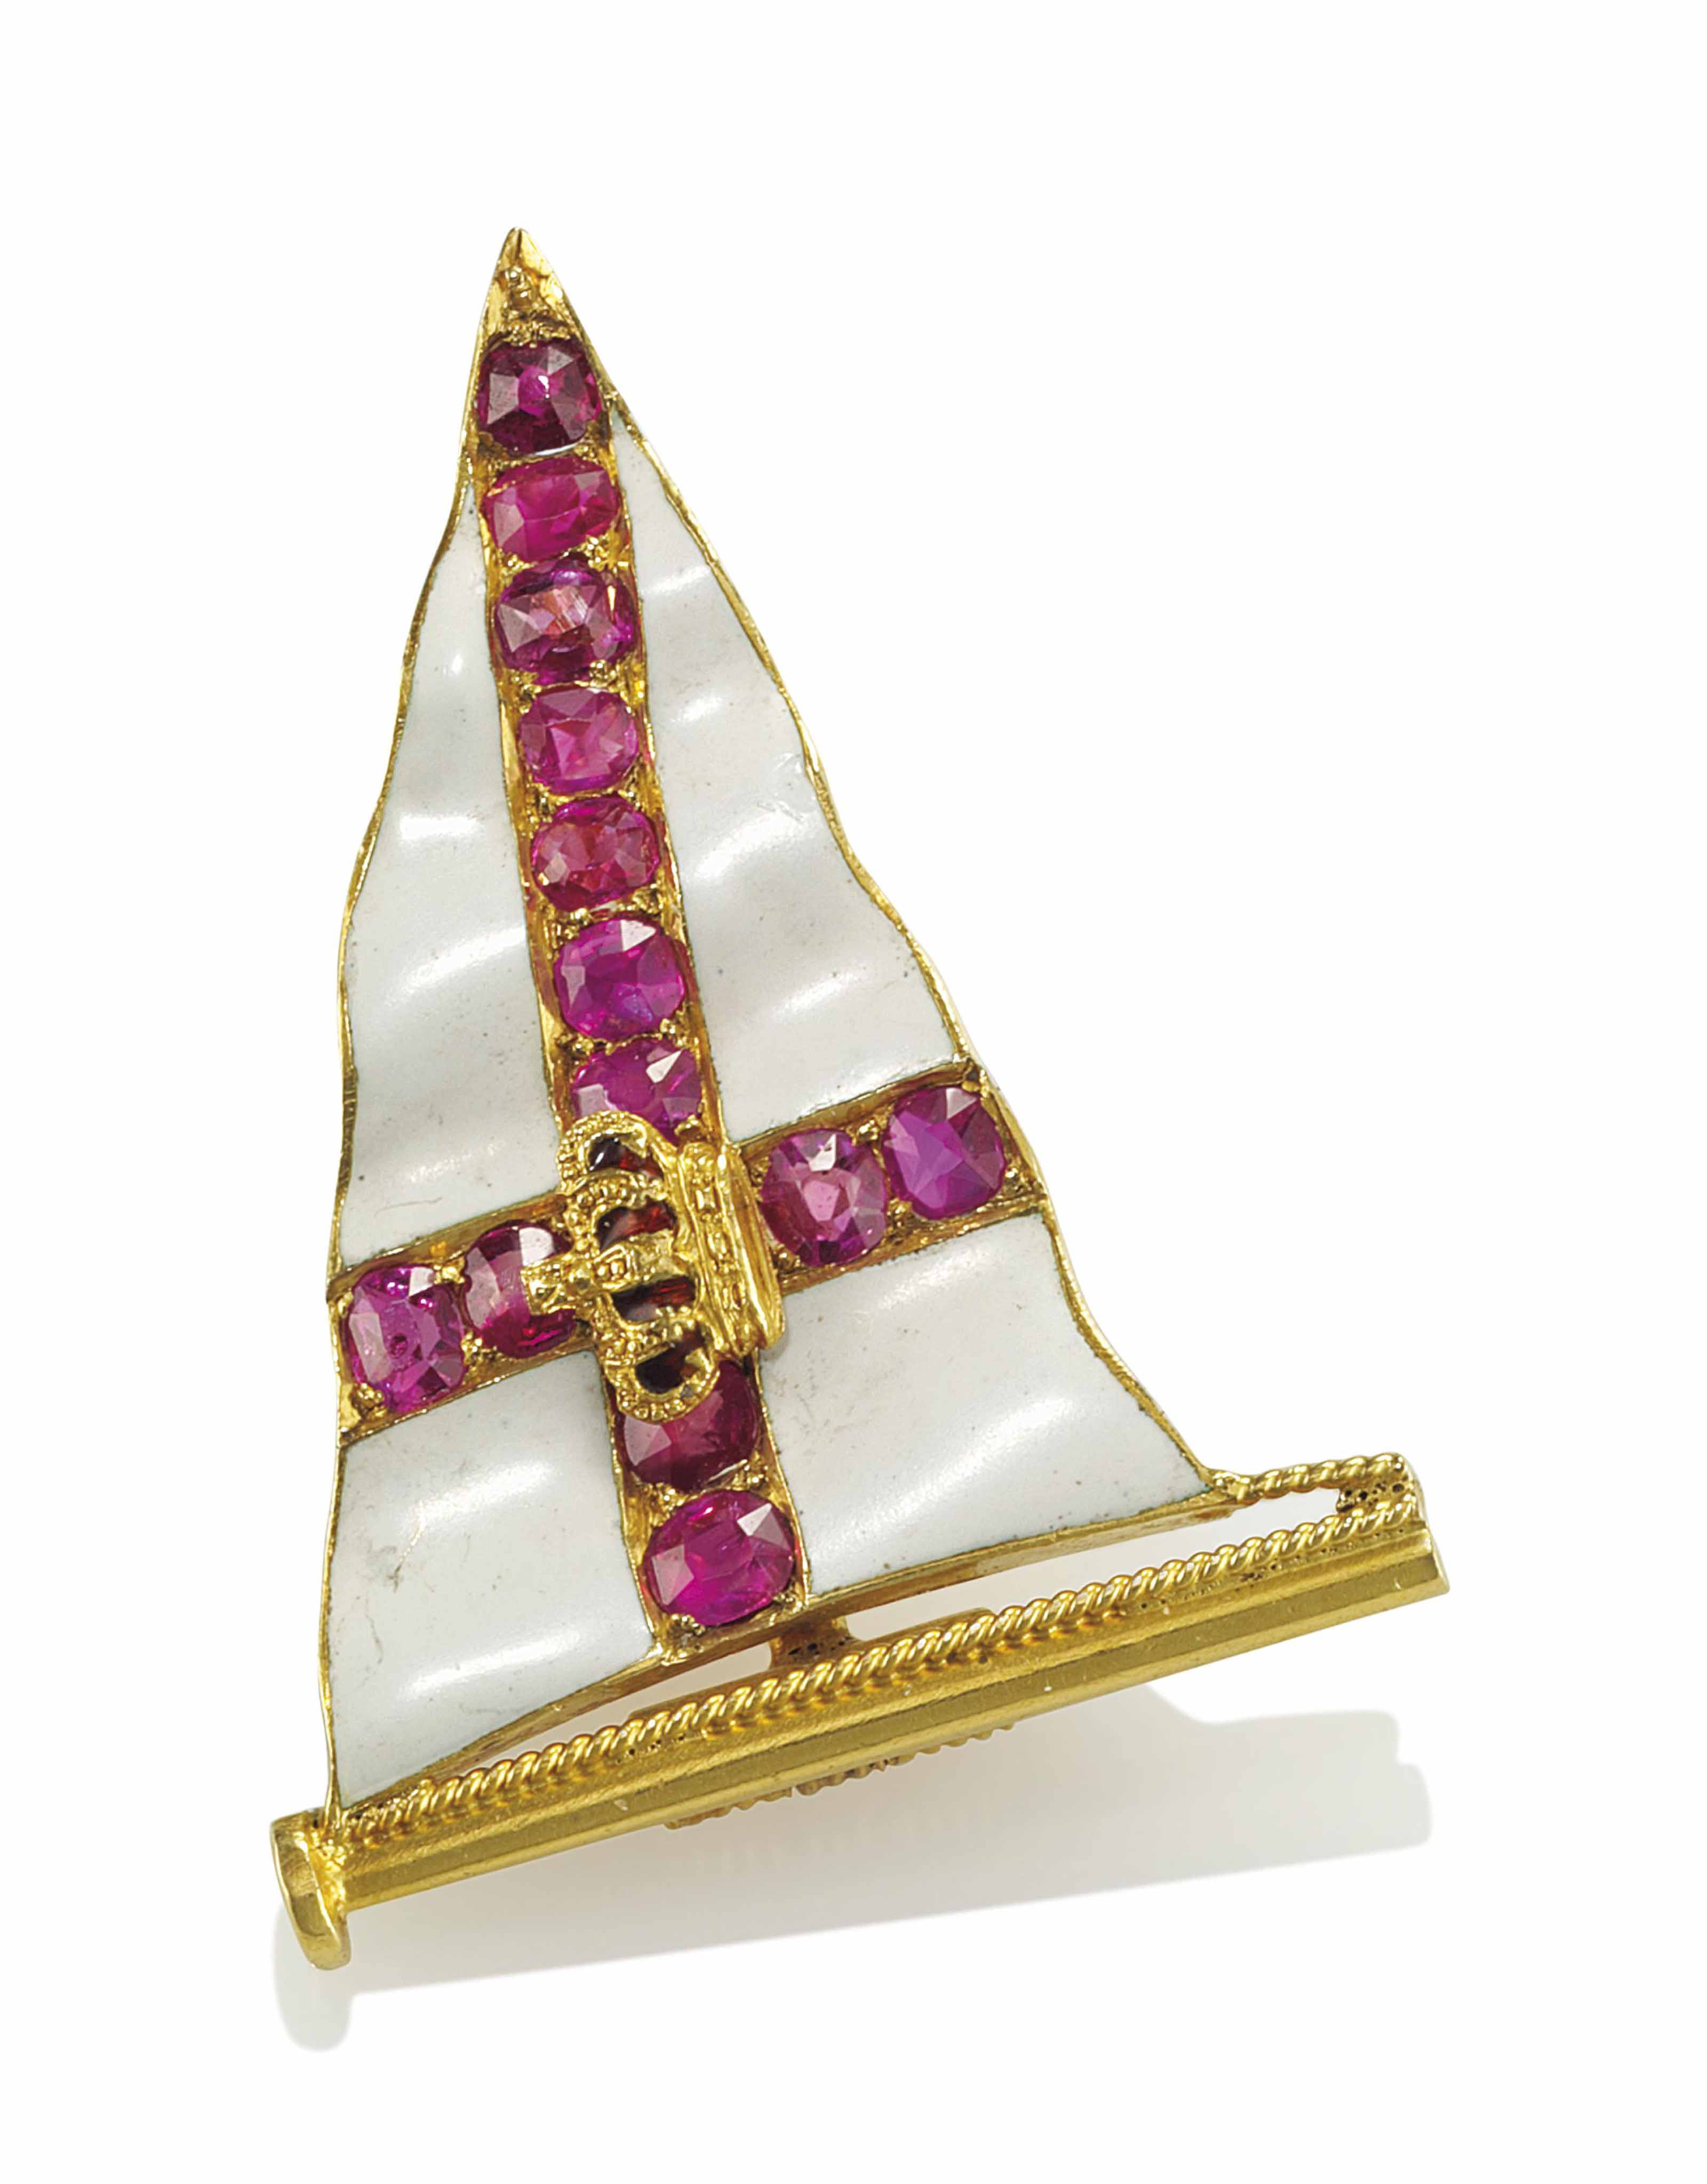 A GOLD, ENAMEL AND RUBY SET RO